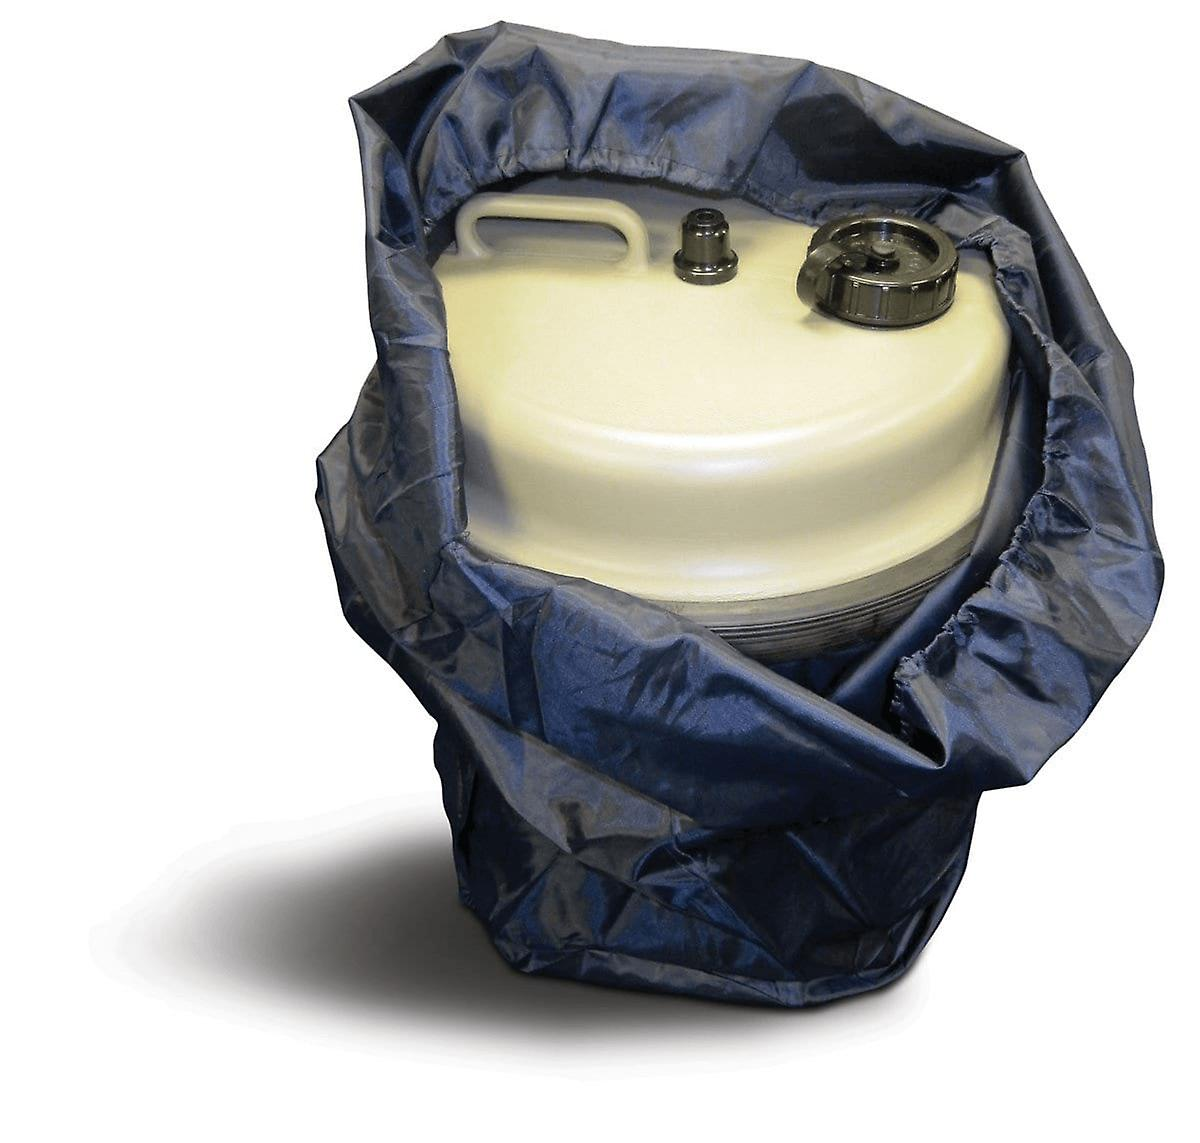 OLPRO Aquaroll and Water Container Bag Blue Storage 420D Nylon 80cm x 45cm